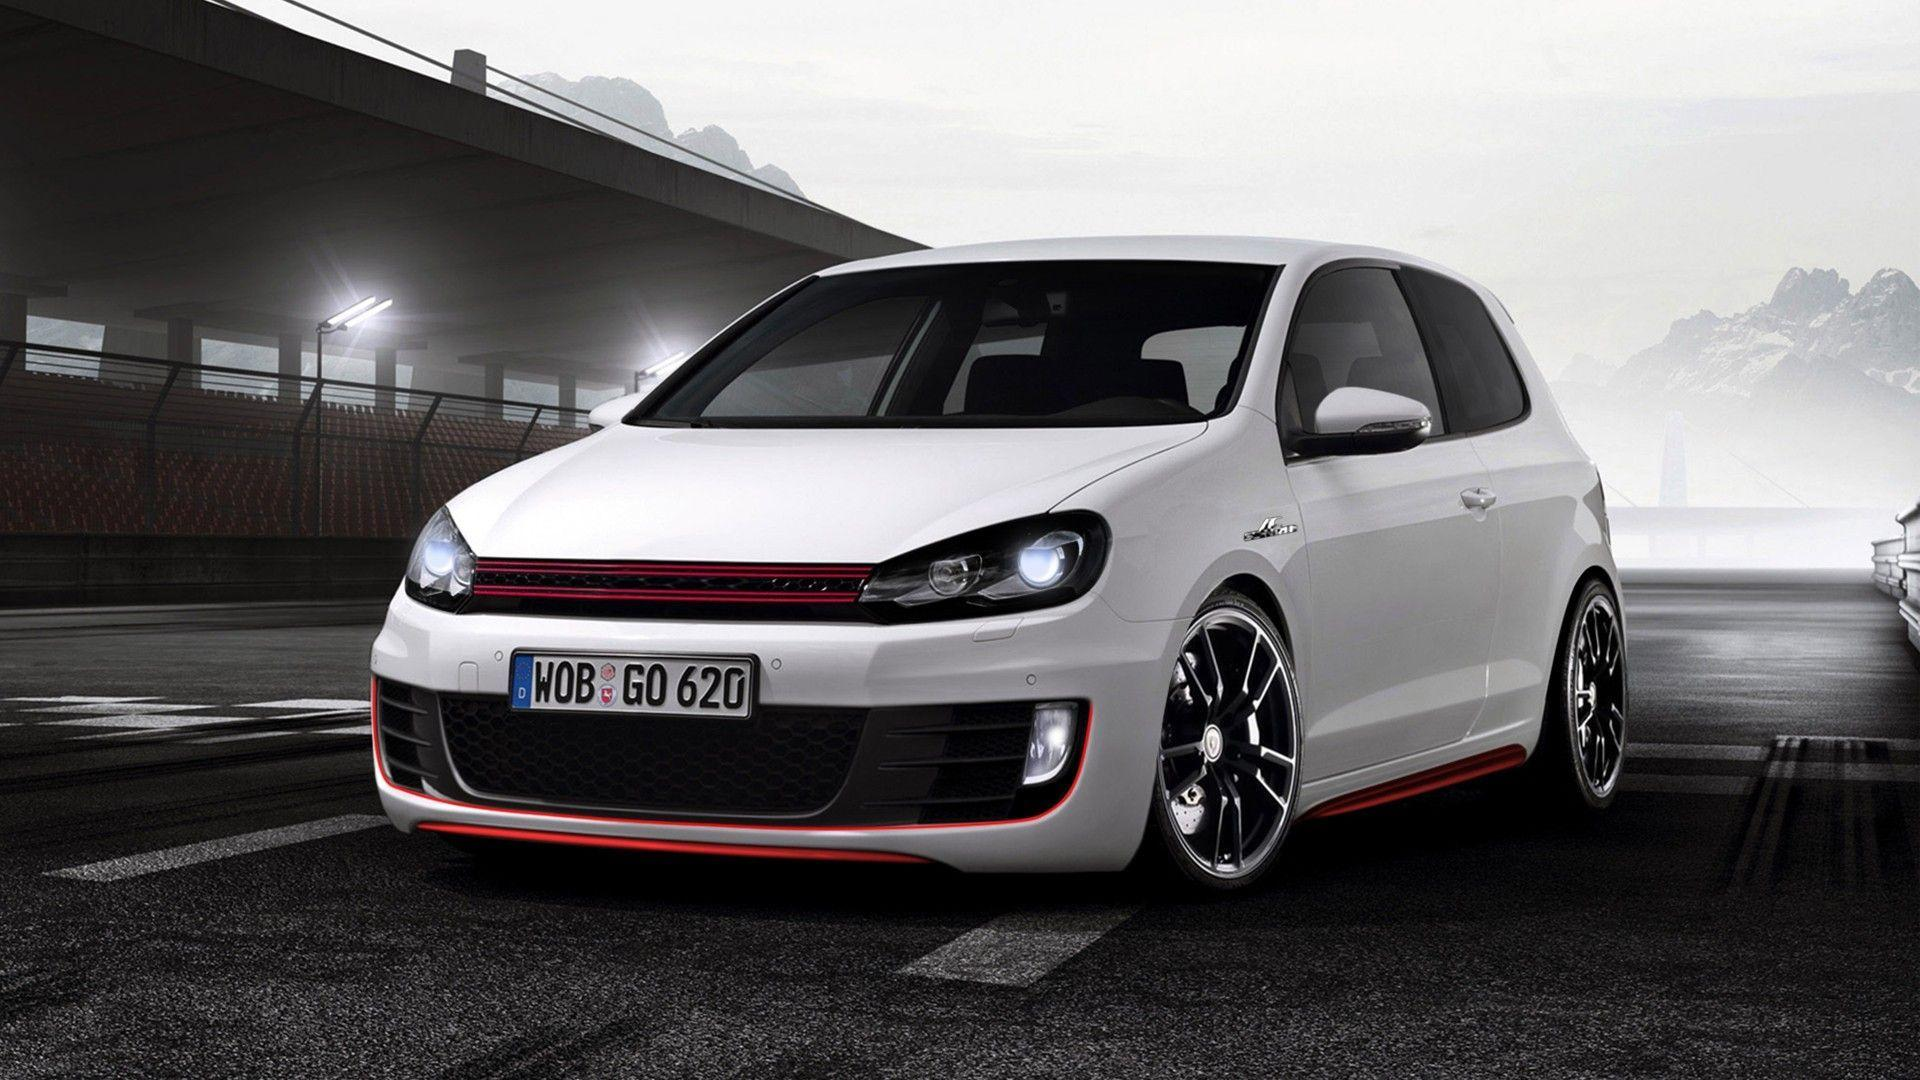 Volkswagen Golf GTI Sport HD Picture Wallpapers Image 63236 Label